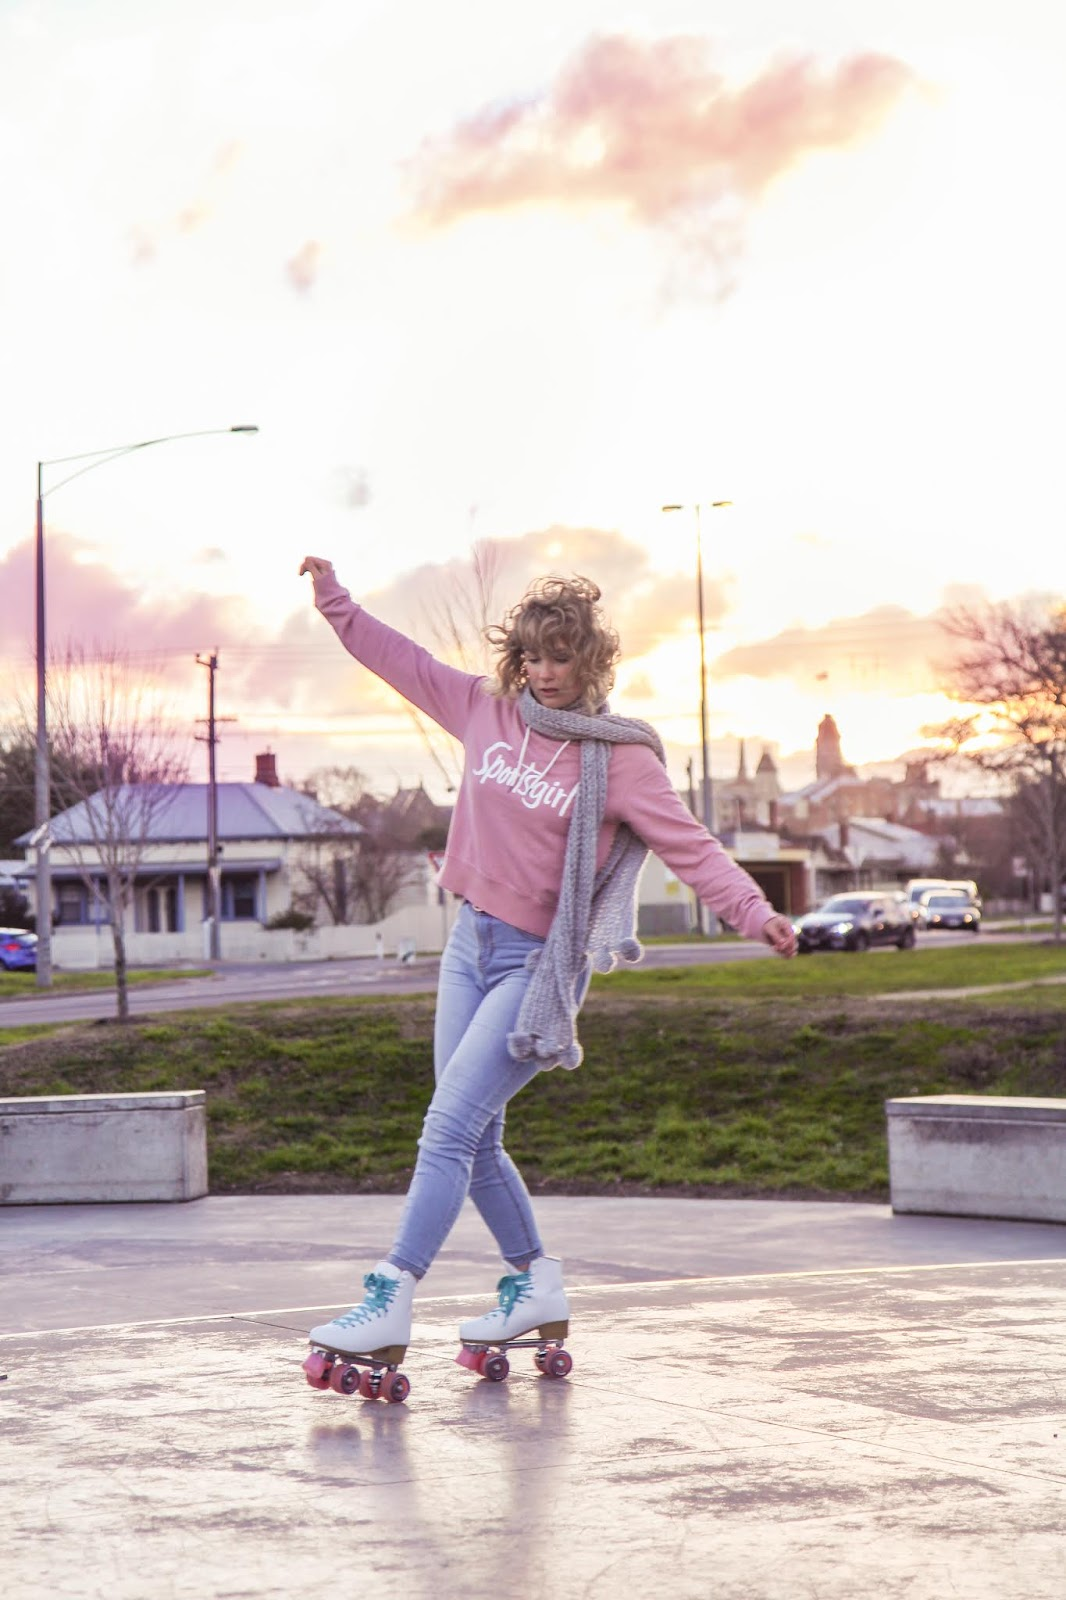 Liana of @findingfemme in Impala rollerskates and pink Sportsgirl hoodie